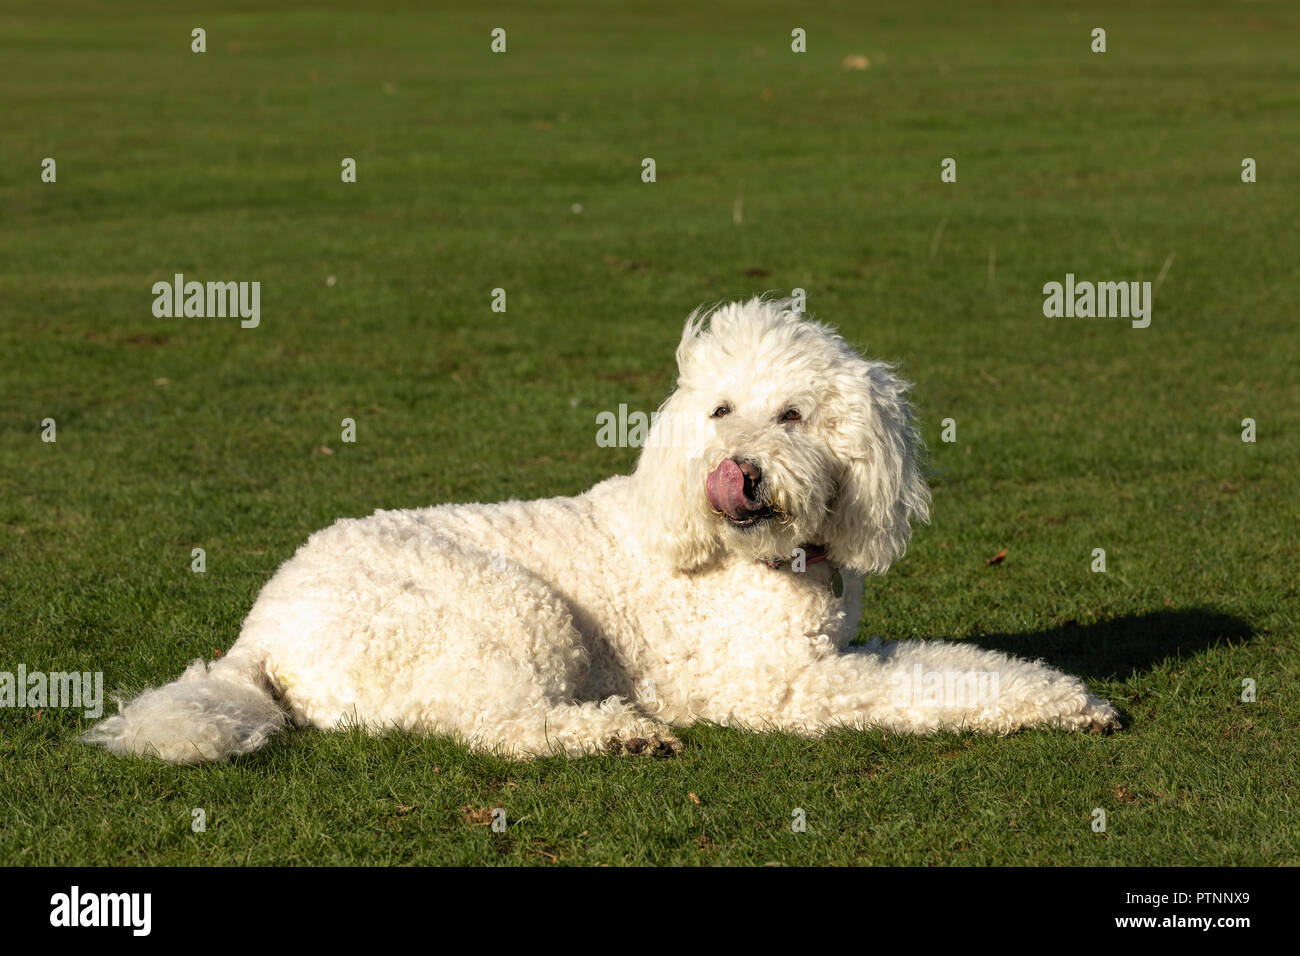 White labradoodle dog pictured outdoors, lying on the ground in a park - Stock Image